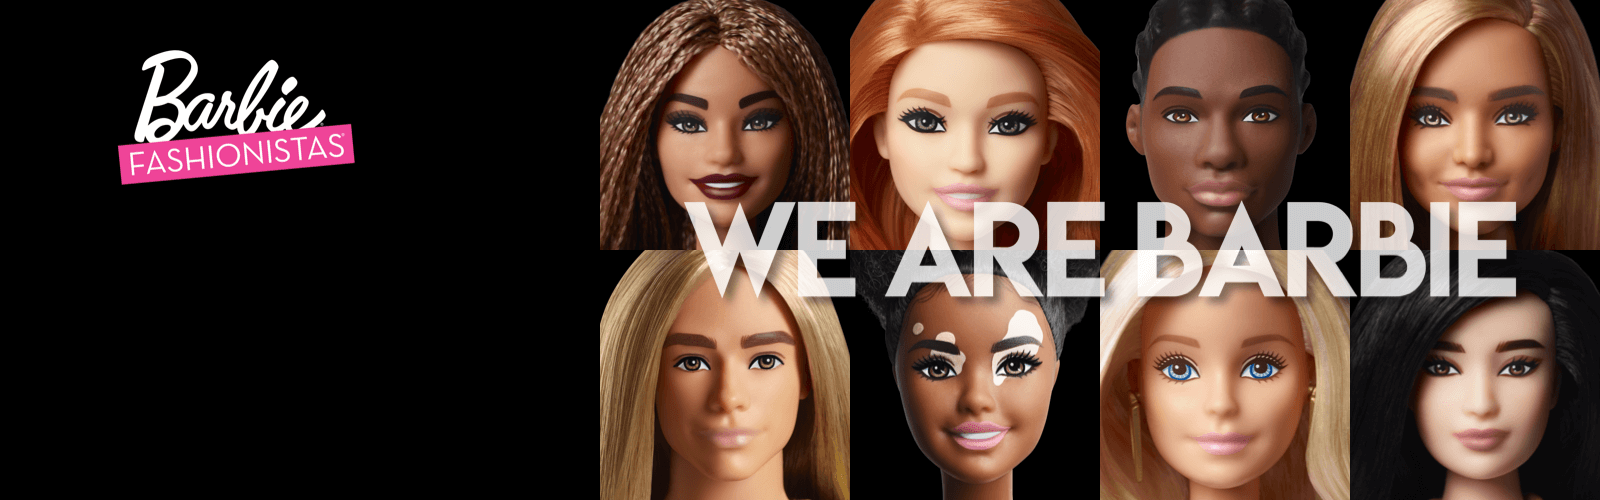 We are Barbie